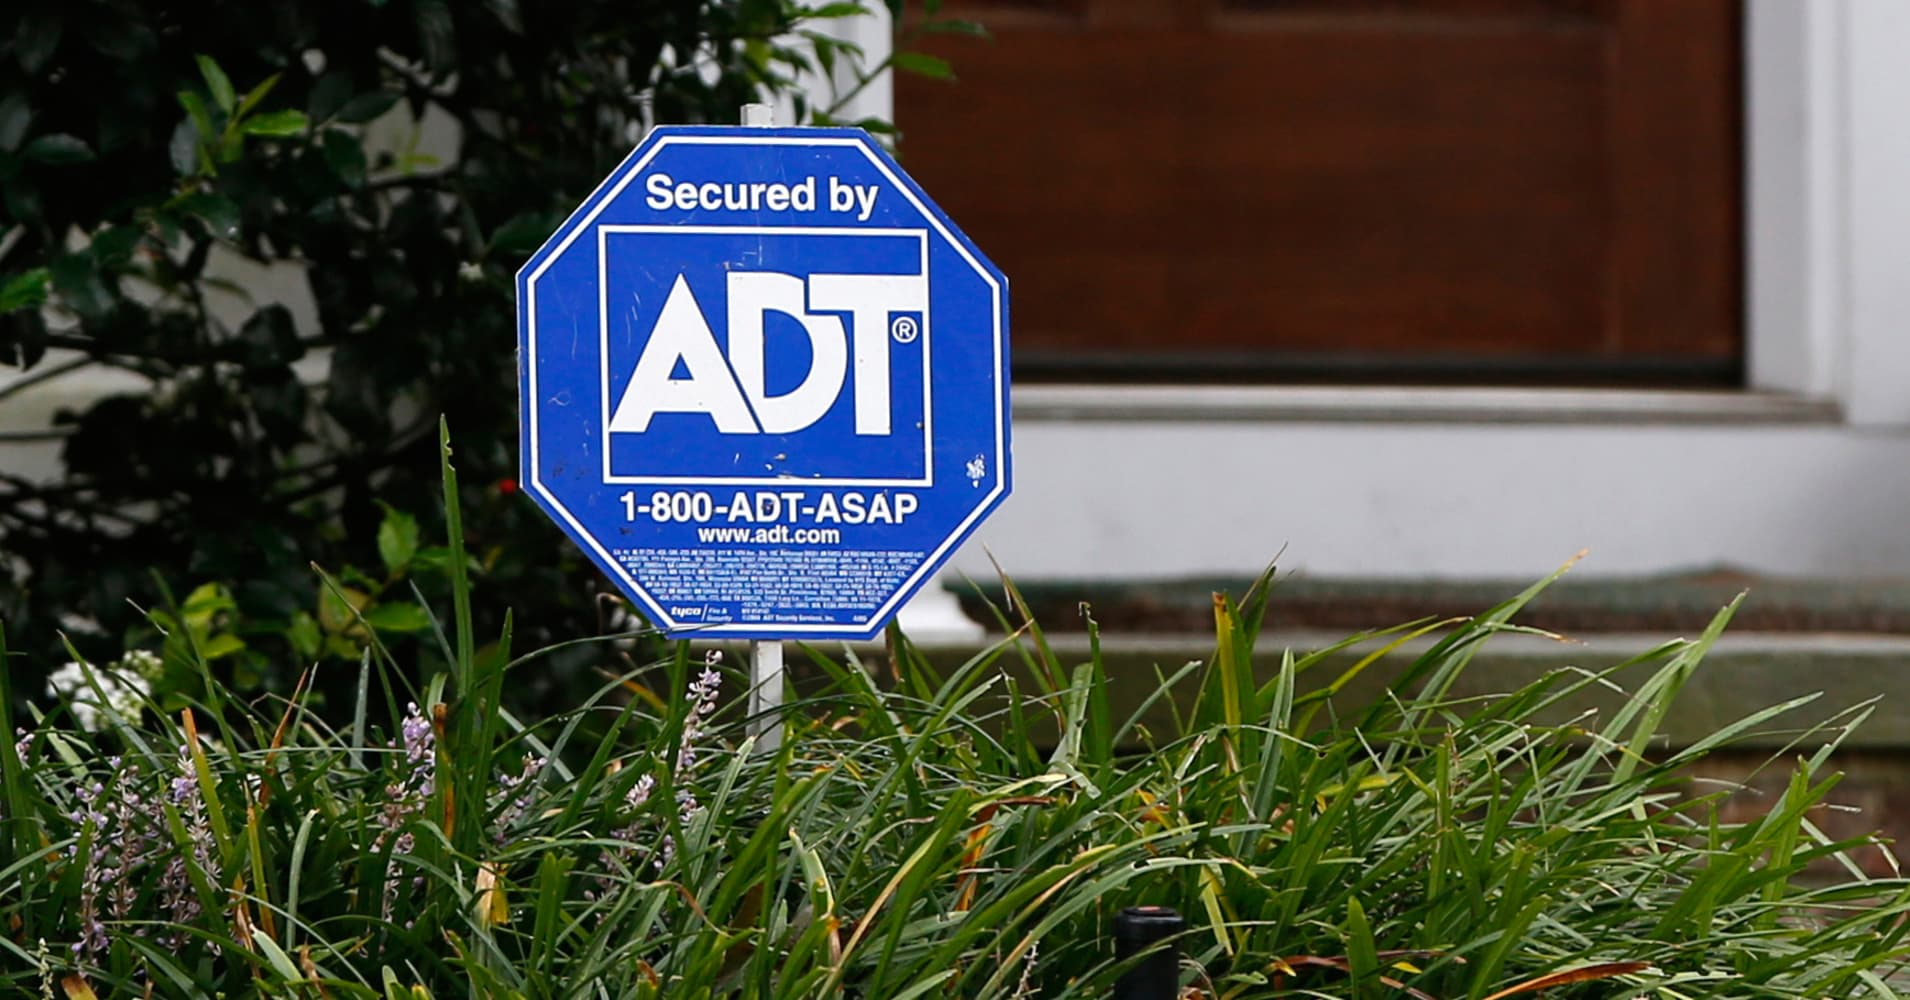 Home security firm ADT's outlook disappoints, shares sink 10%